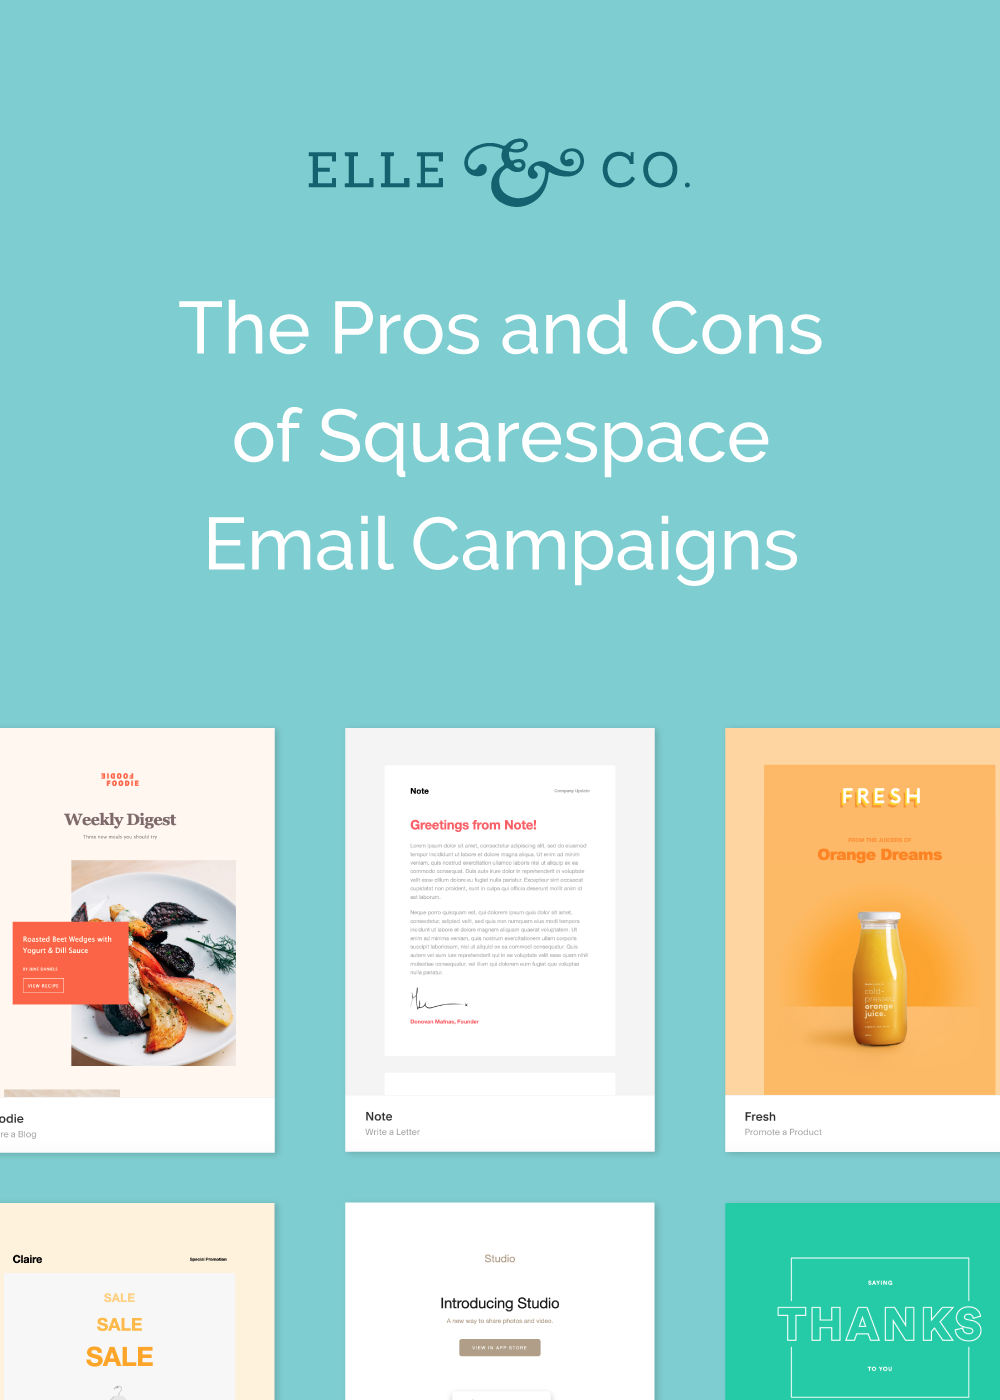 The Pros and Cons of Squarespace's New Email Campaign Feature | Elle & Company